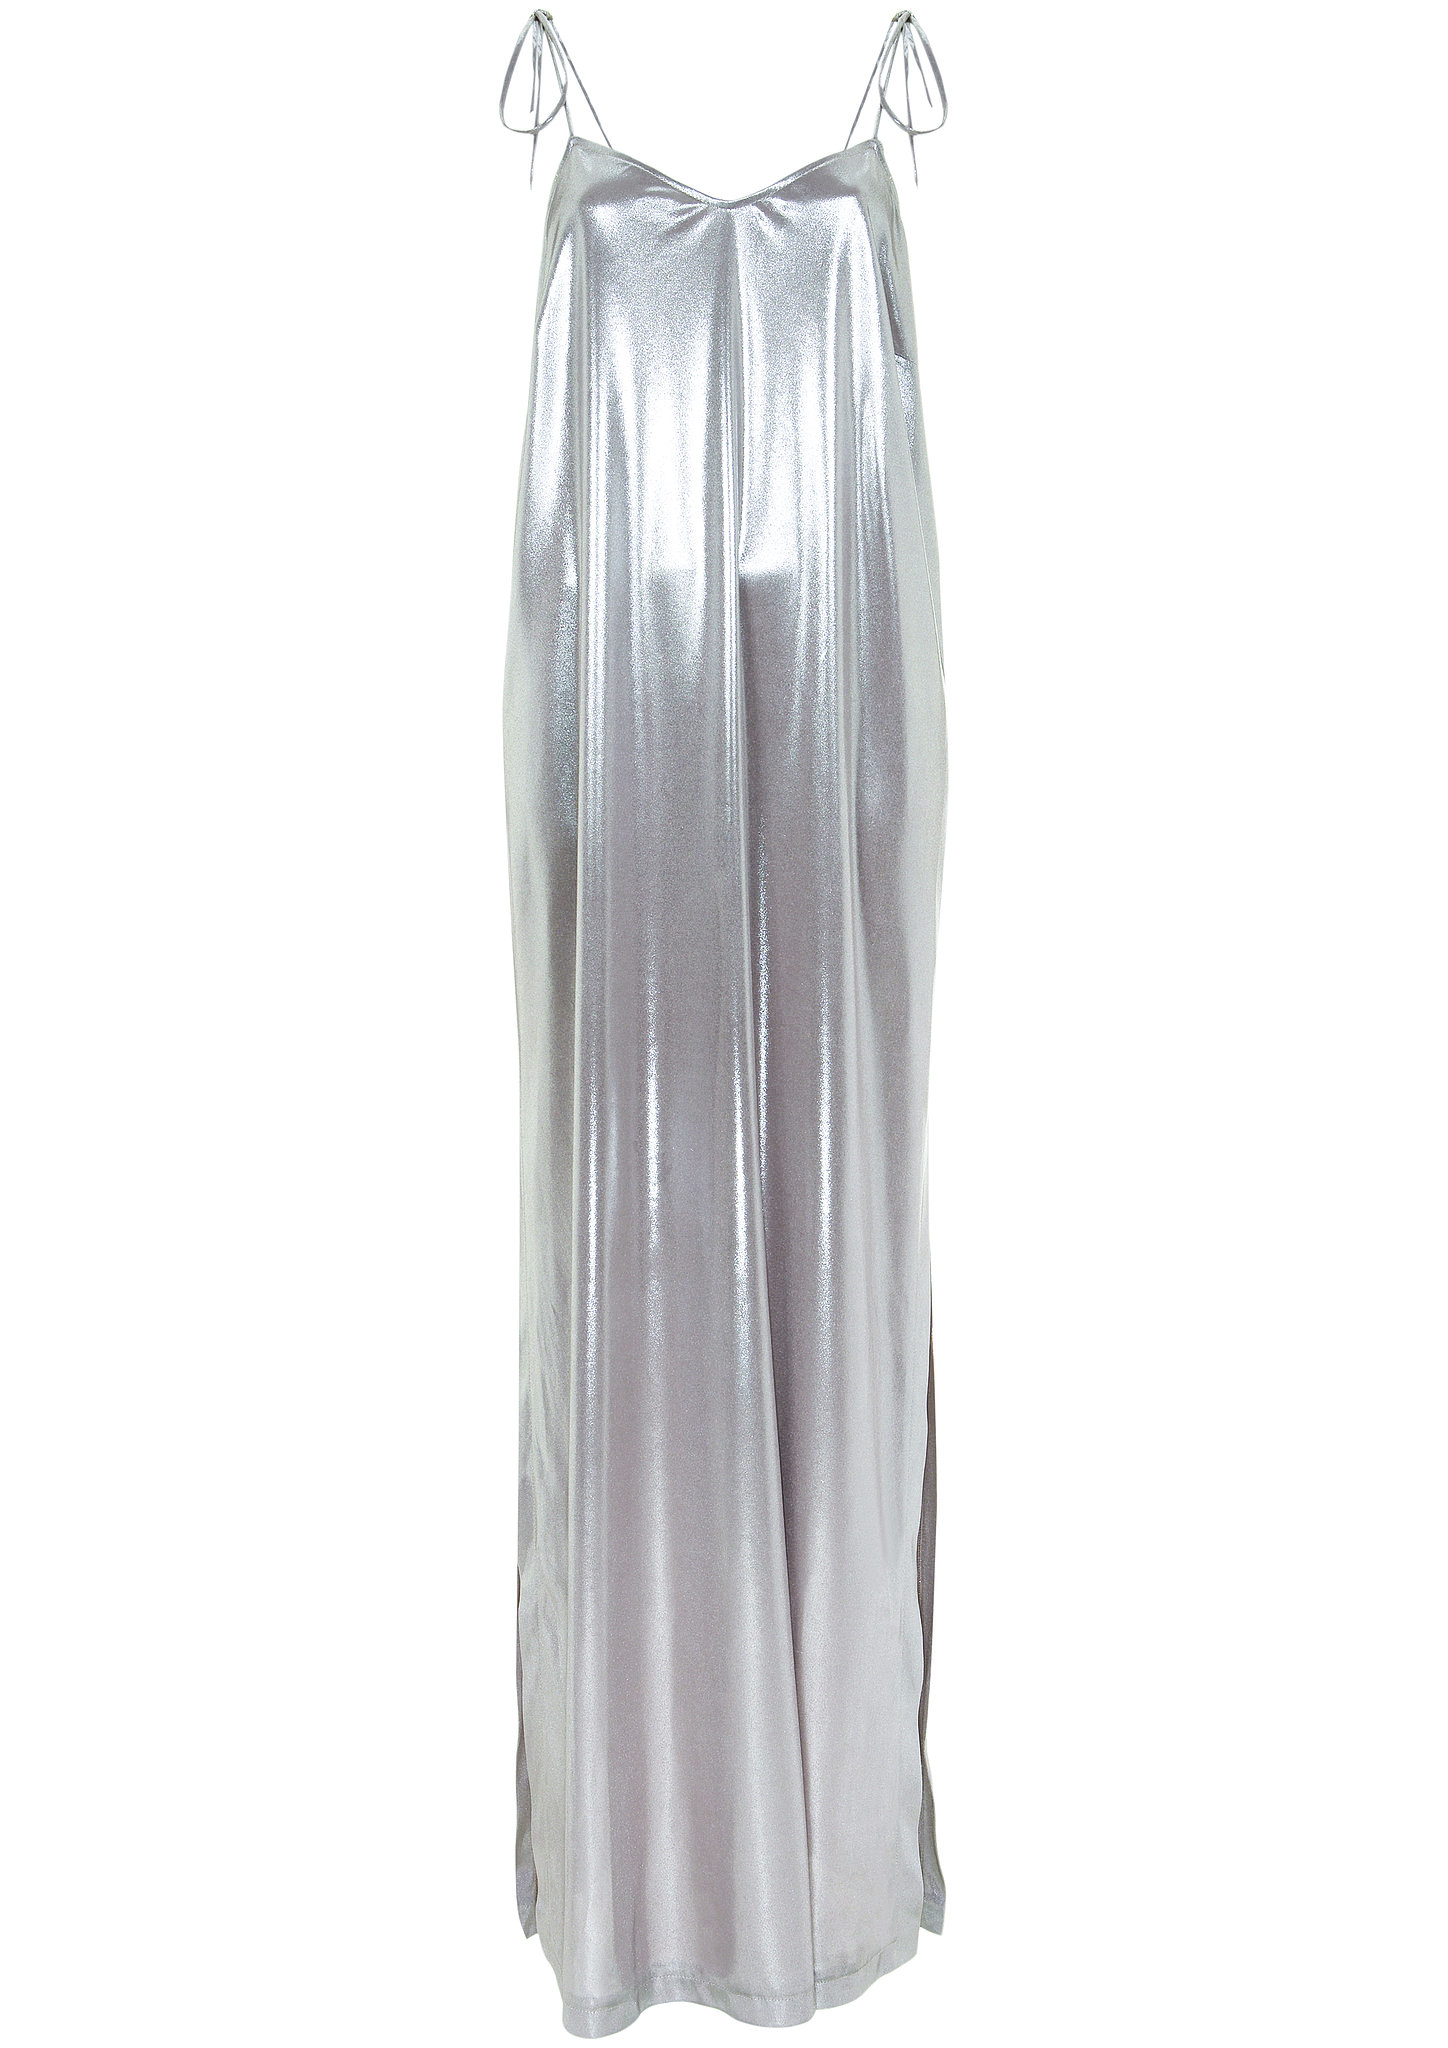 Slinky Silver Slip Dress